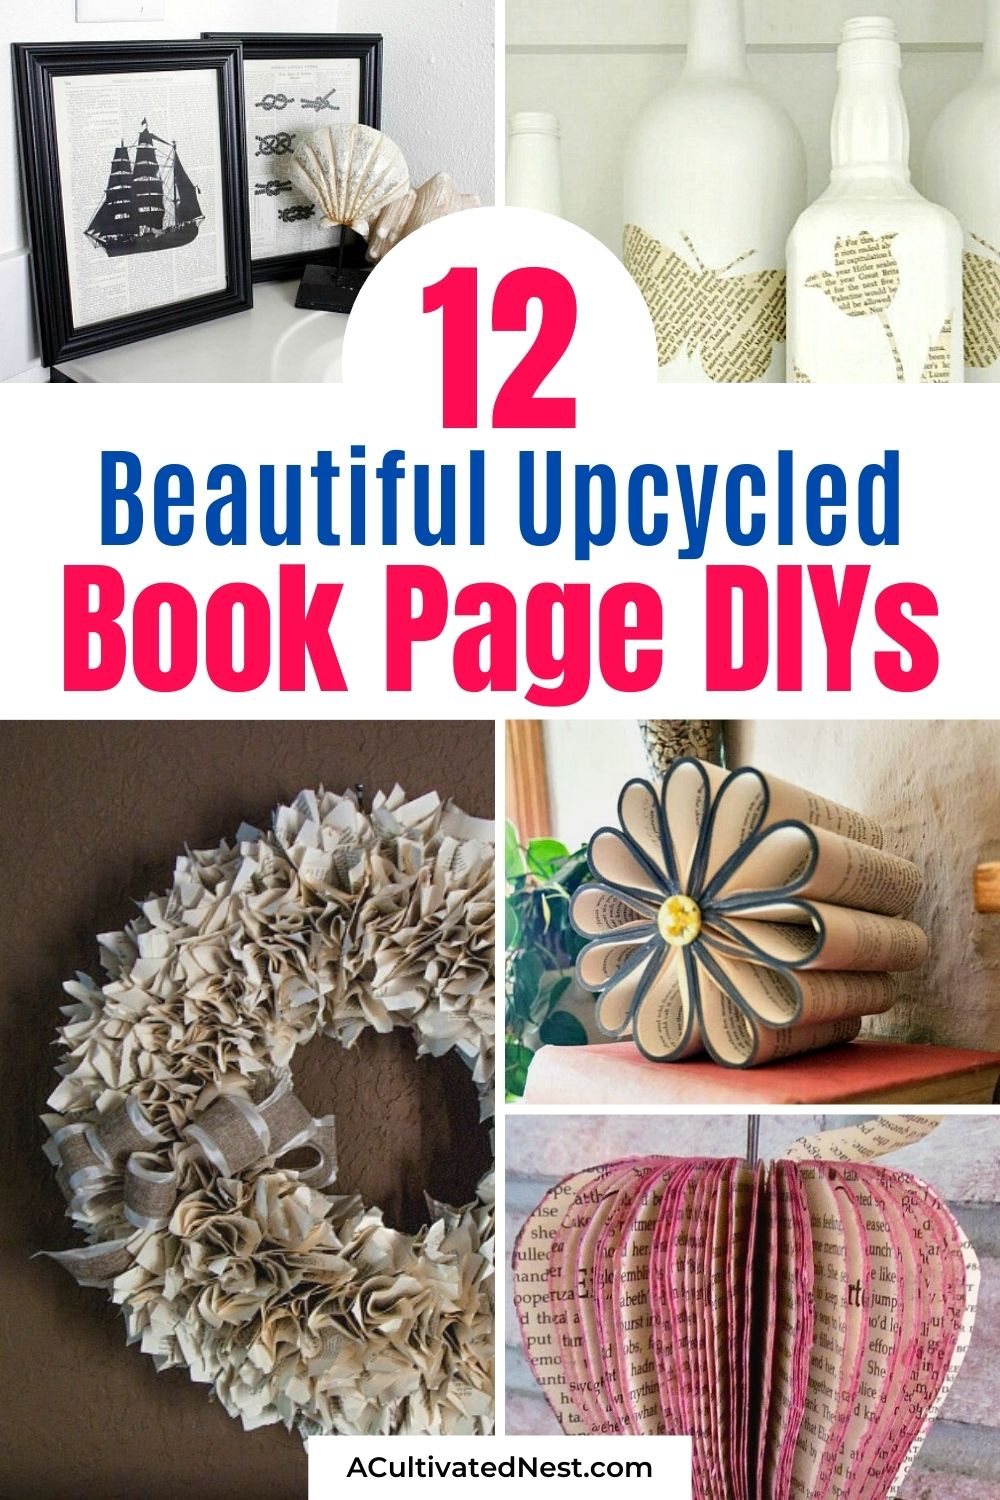 12 Awesome Book Page Projects- Give an old book new life with these beautiful upcycled book page projects! These budget décor DIYs are such a great way to repurpose old books! | book upcycle projects, #upcycleProjects #repurpose #reuse #DIY #ACultivatedNest